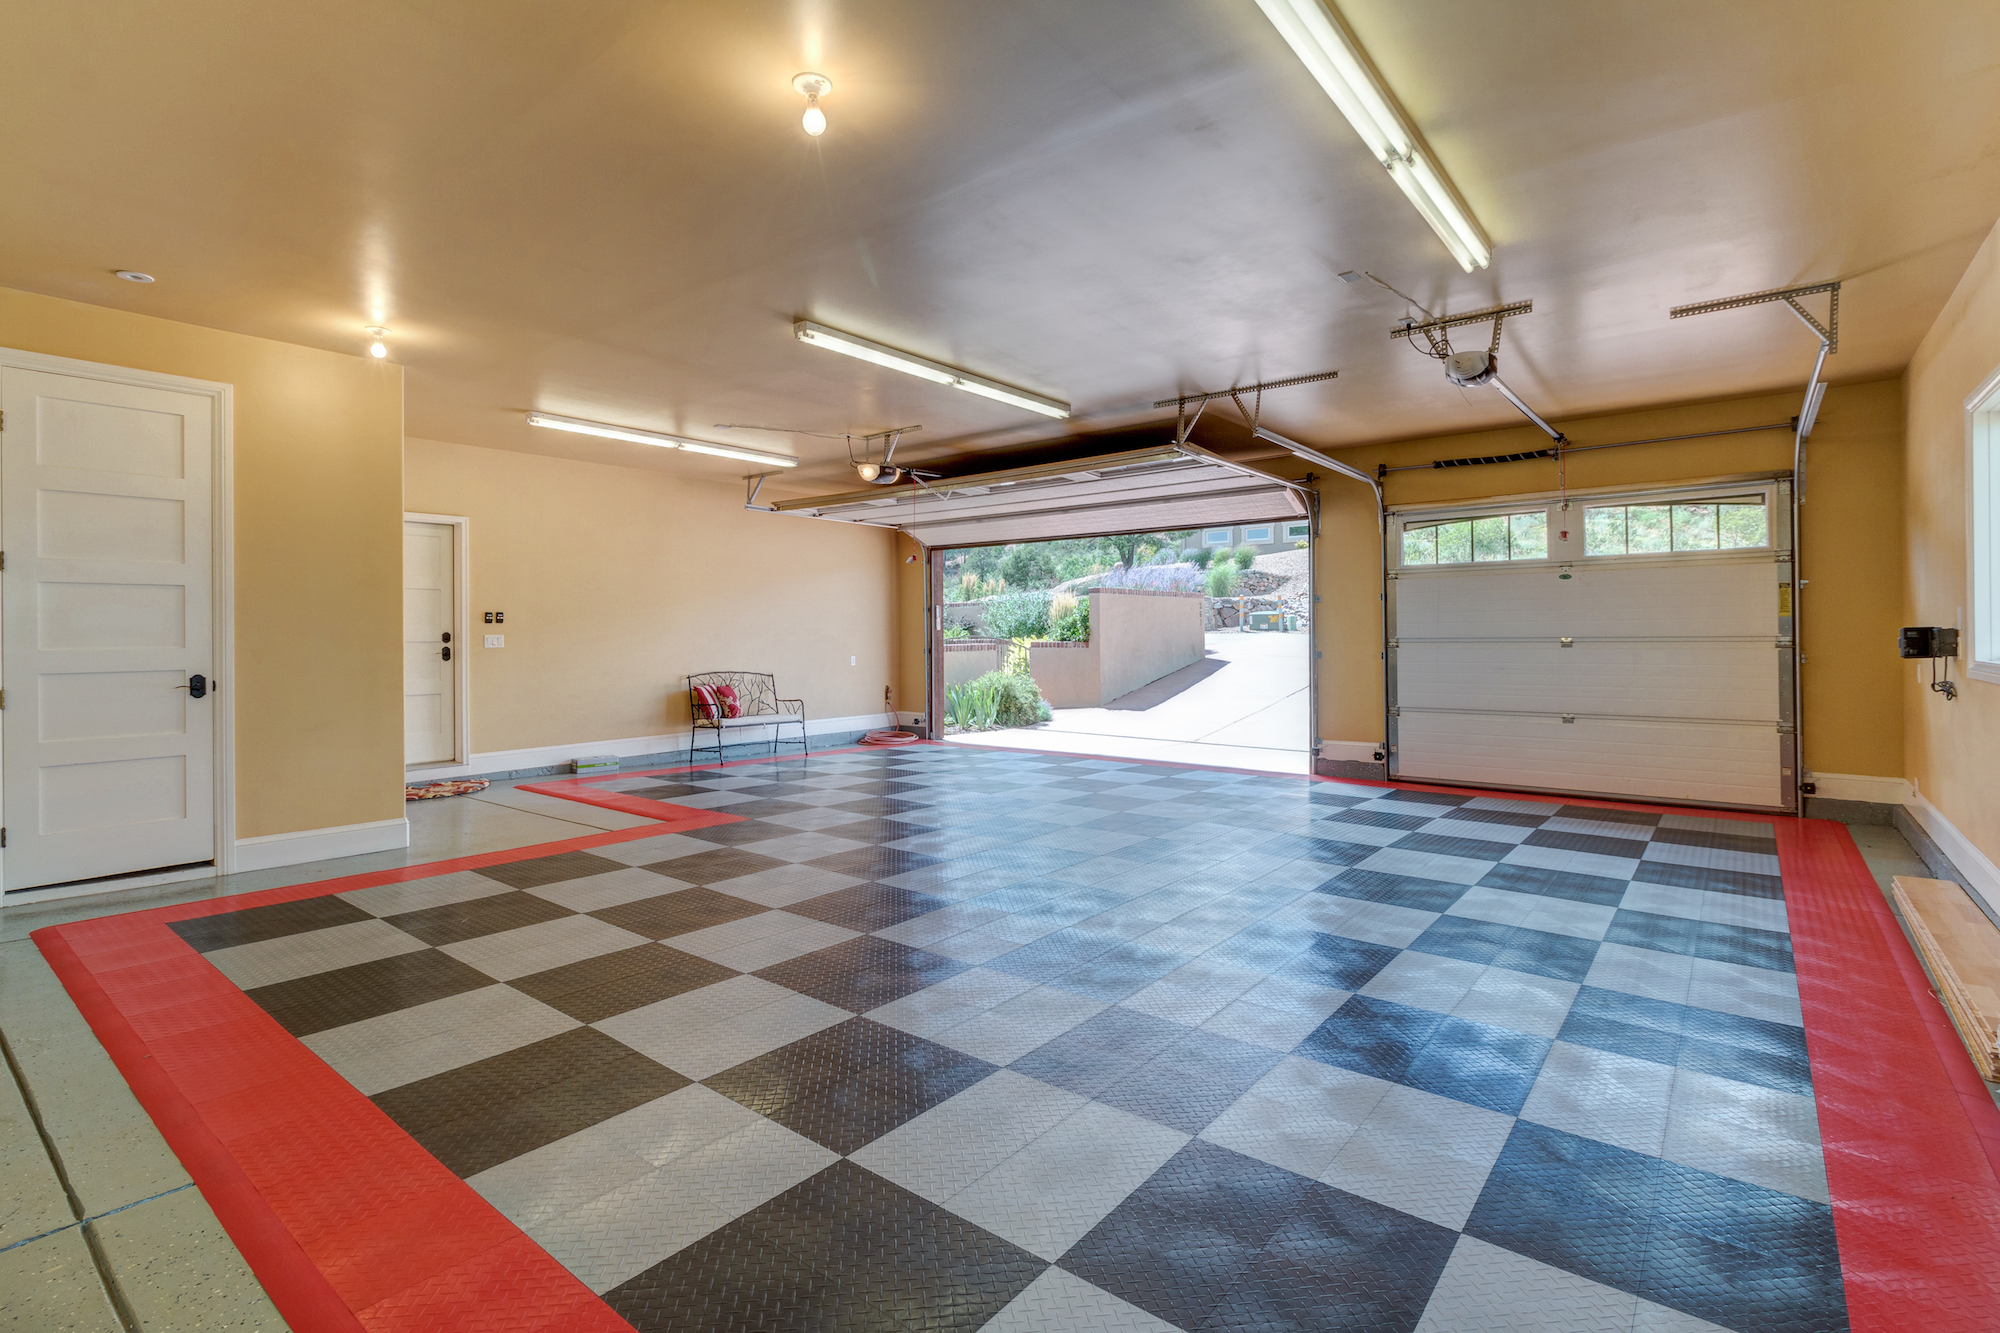 035-Finished garage with race car floor mat and storage area.jpg